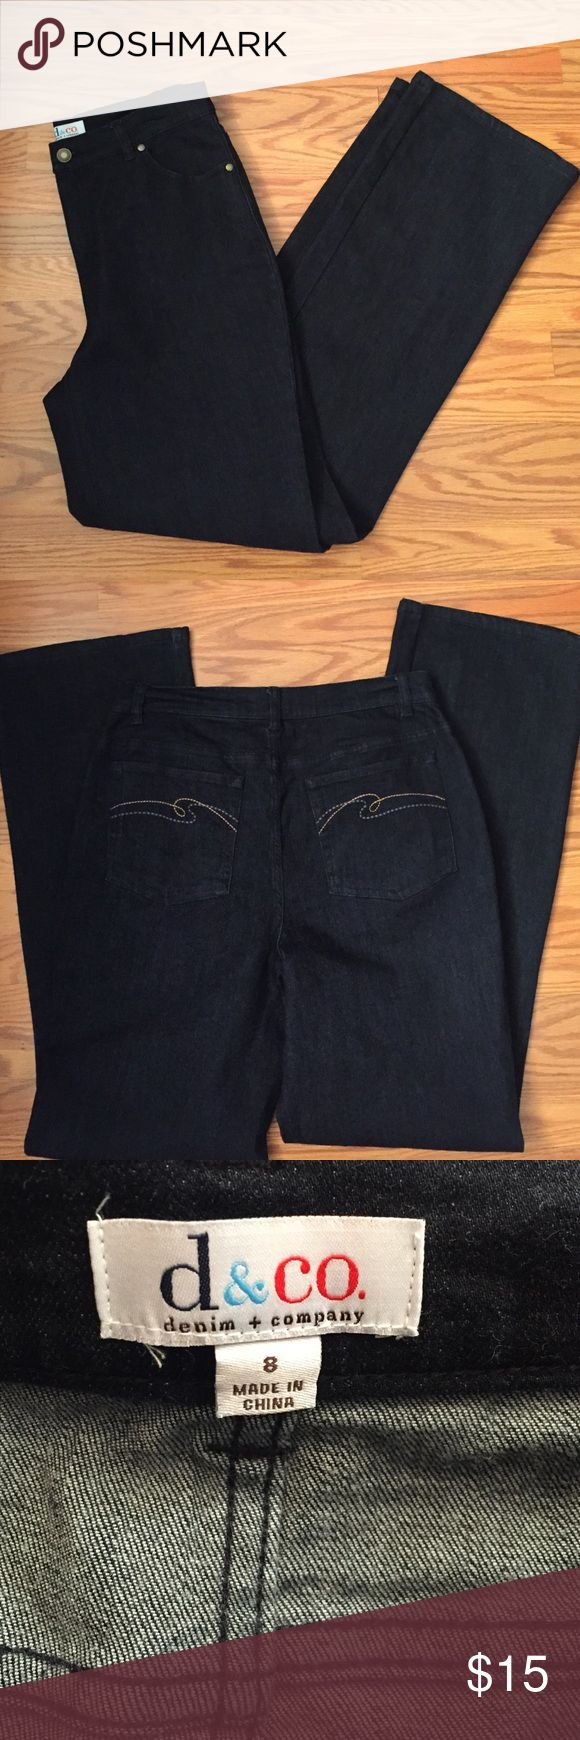 "Denim + company jeans D&co jeans, NWOT inseam 32"" from qvc home shopping network denim + company Jeans Boot Cut"